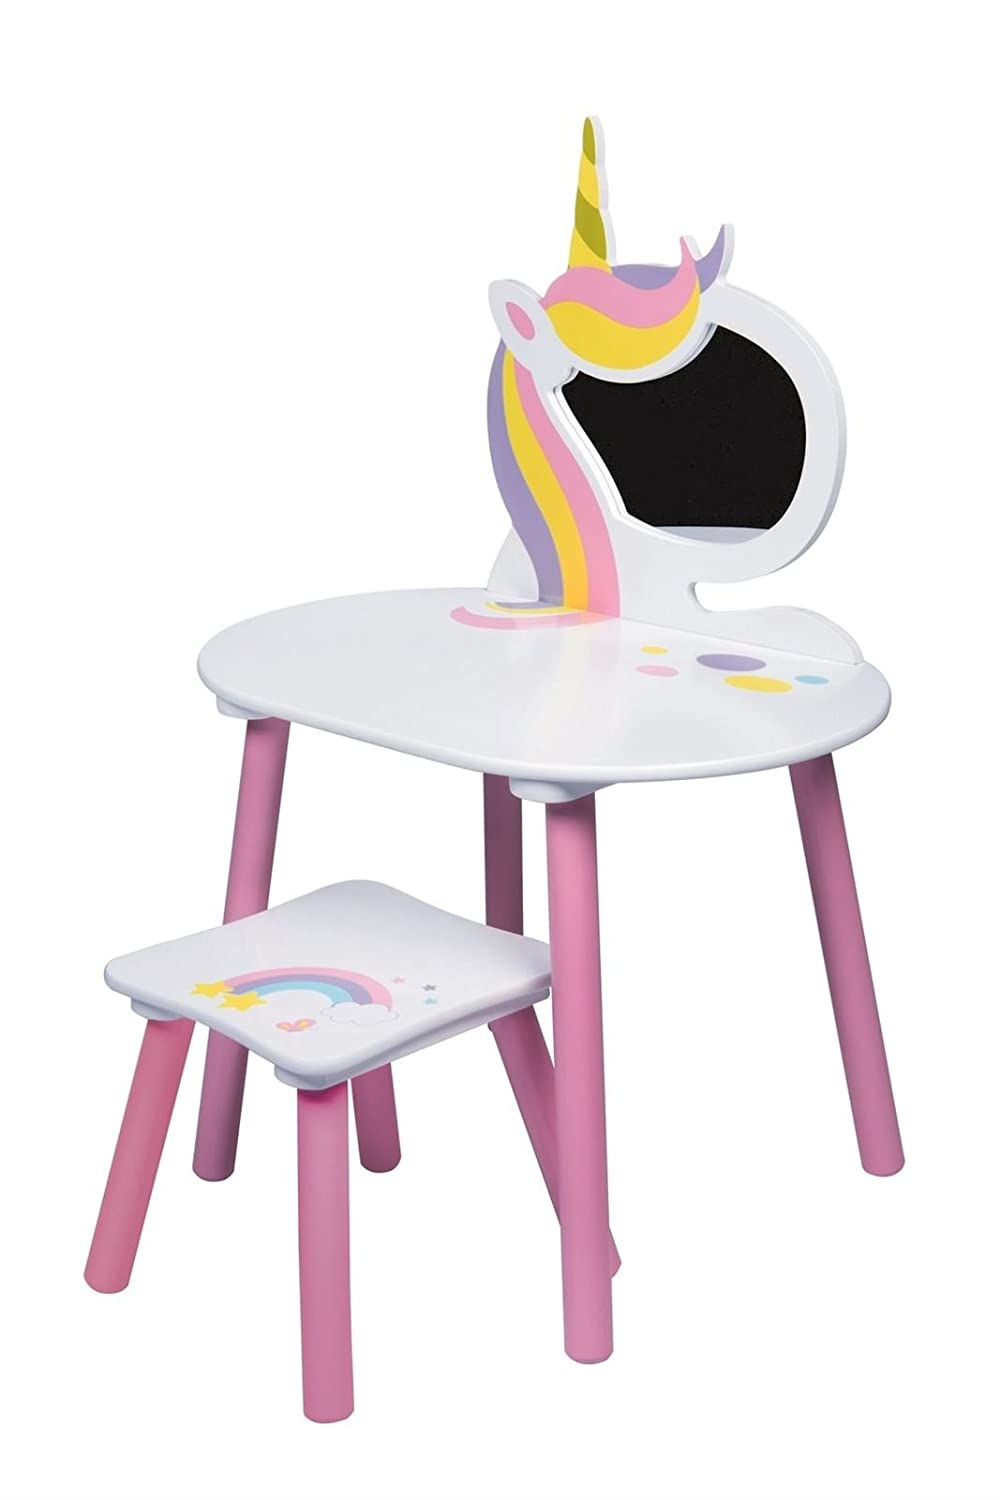 Coiffeuse Licorne, Blanc/Rose, 59 x 39 x 83 cm Global Industry 47781-S